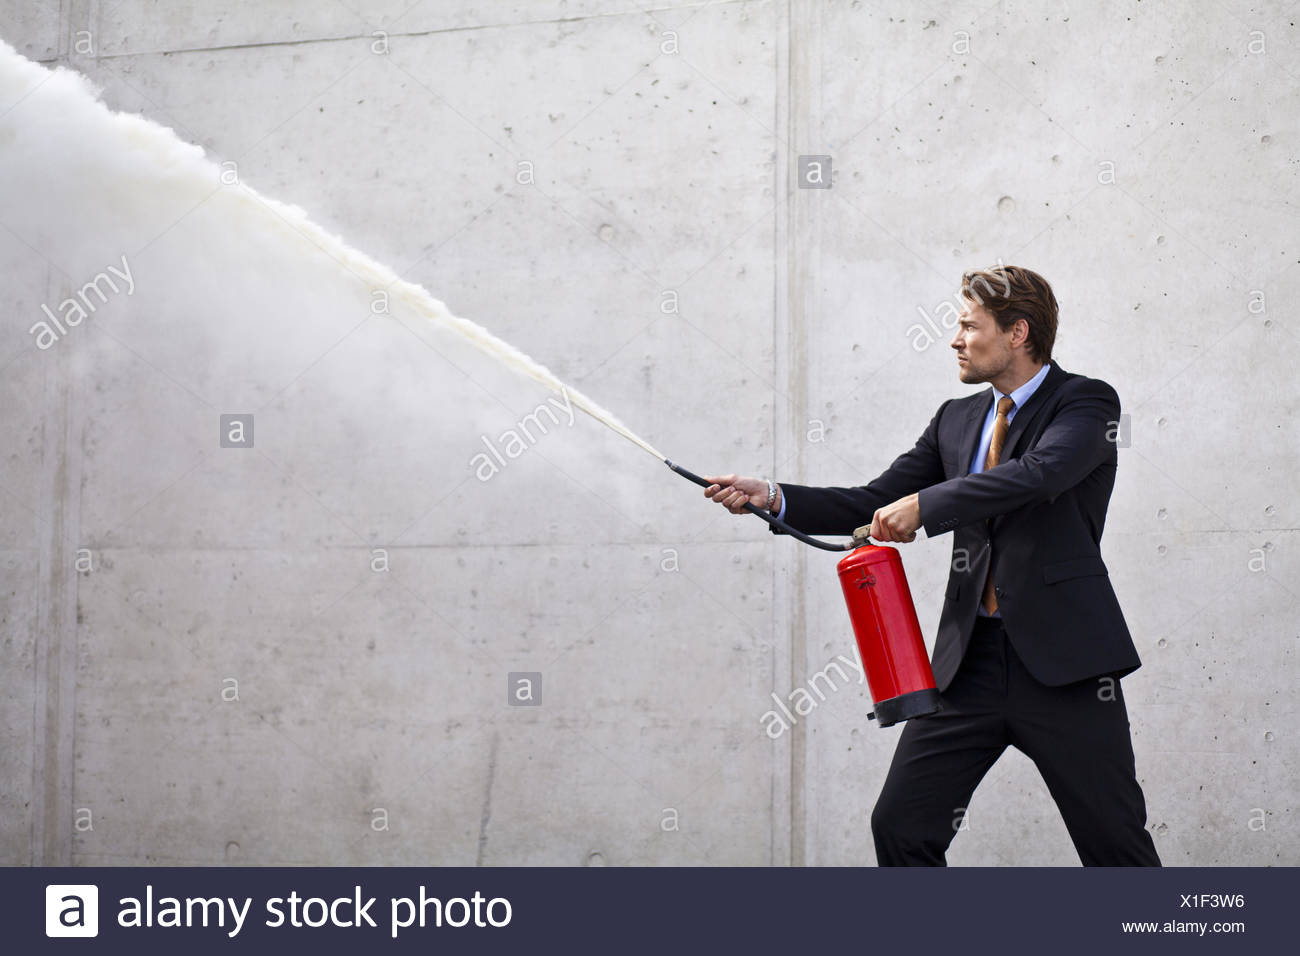 Focused businessman using a fire extinguisher - Stock Image